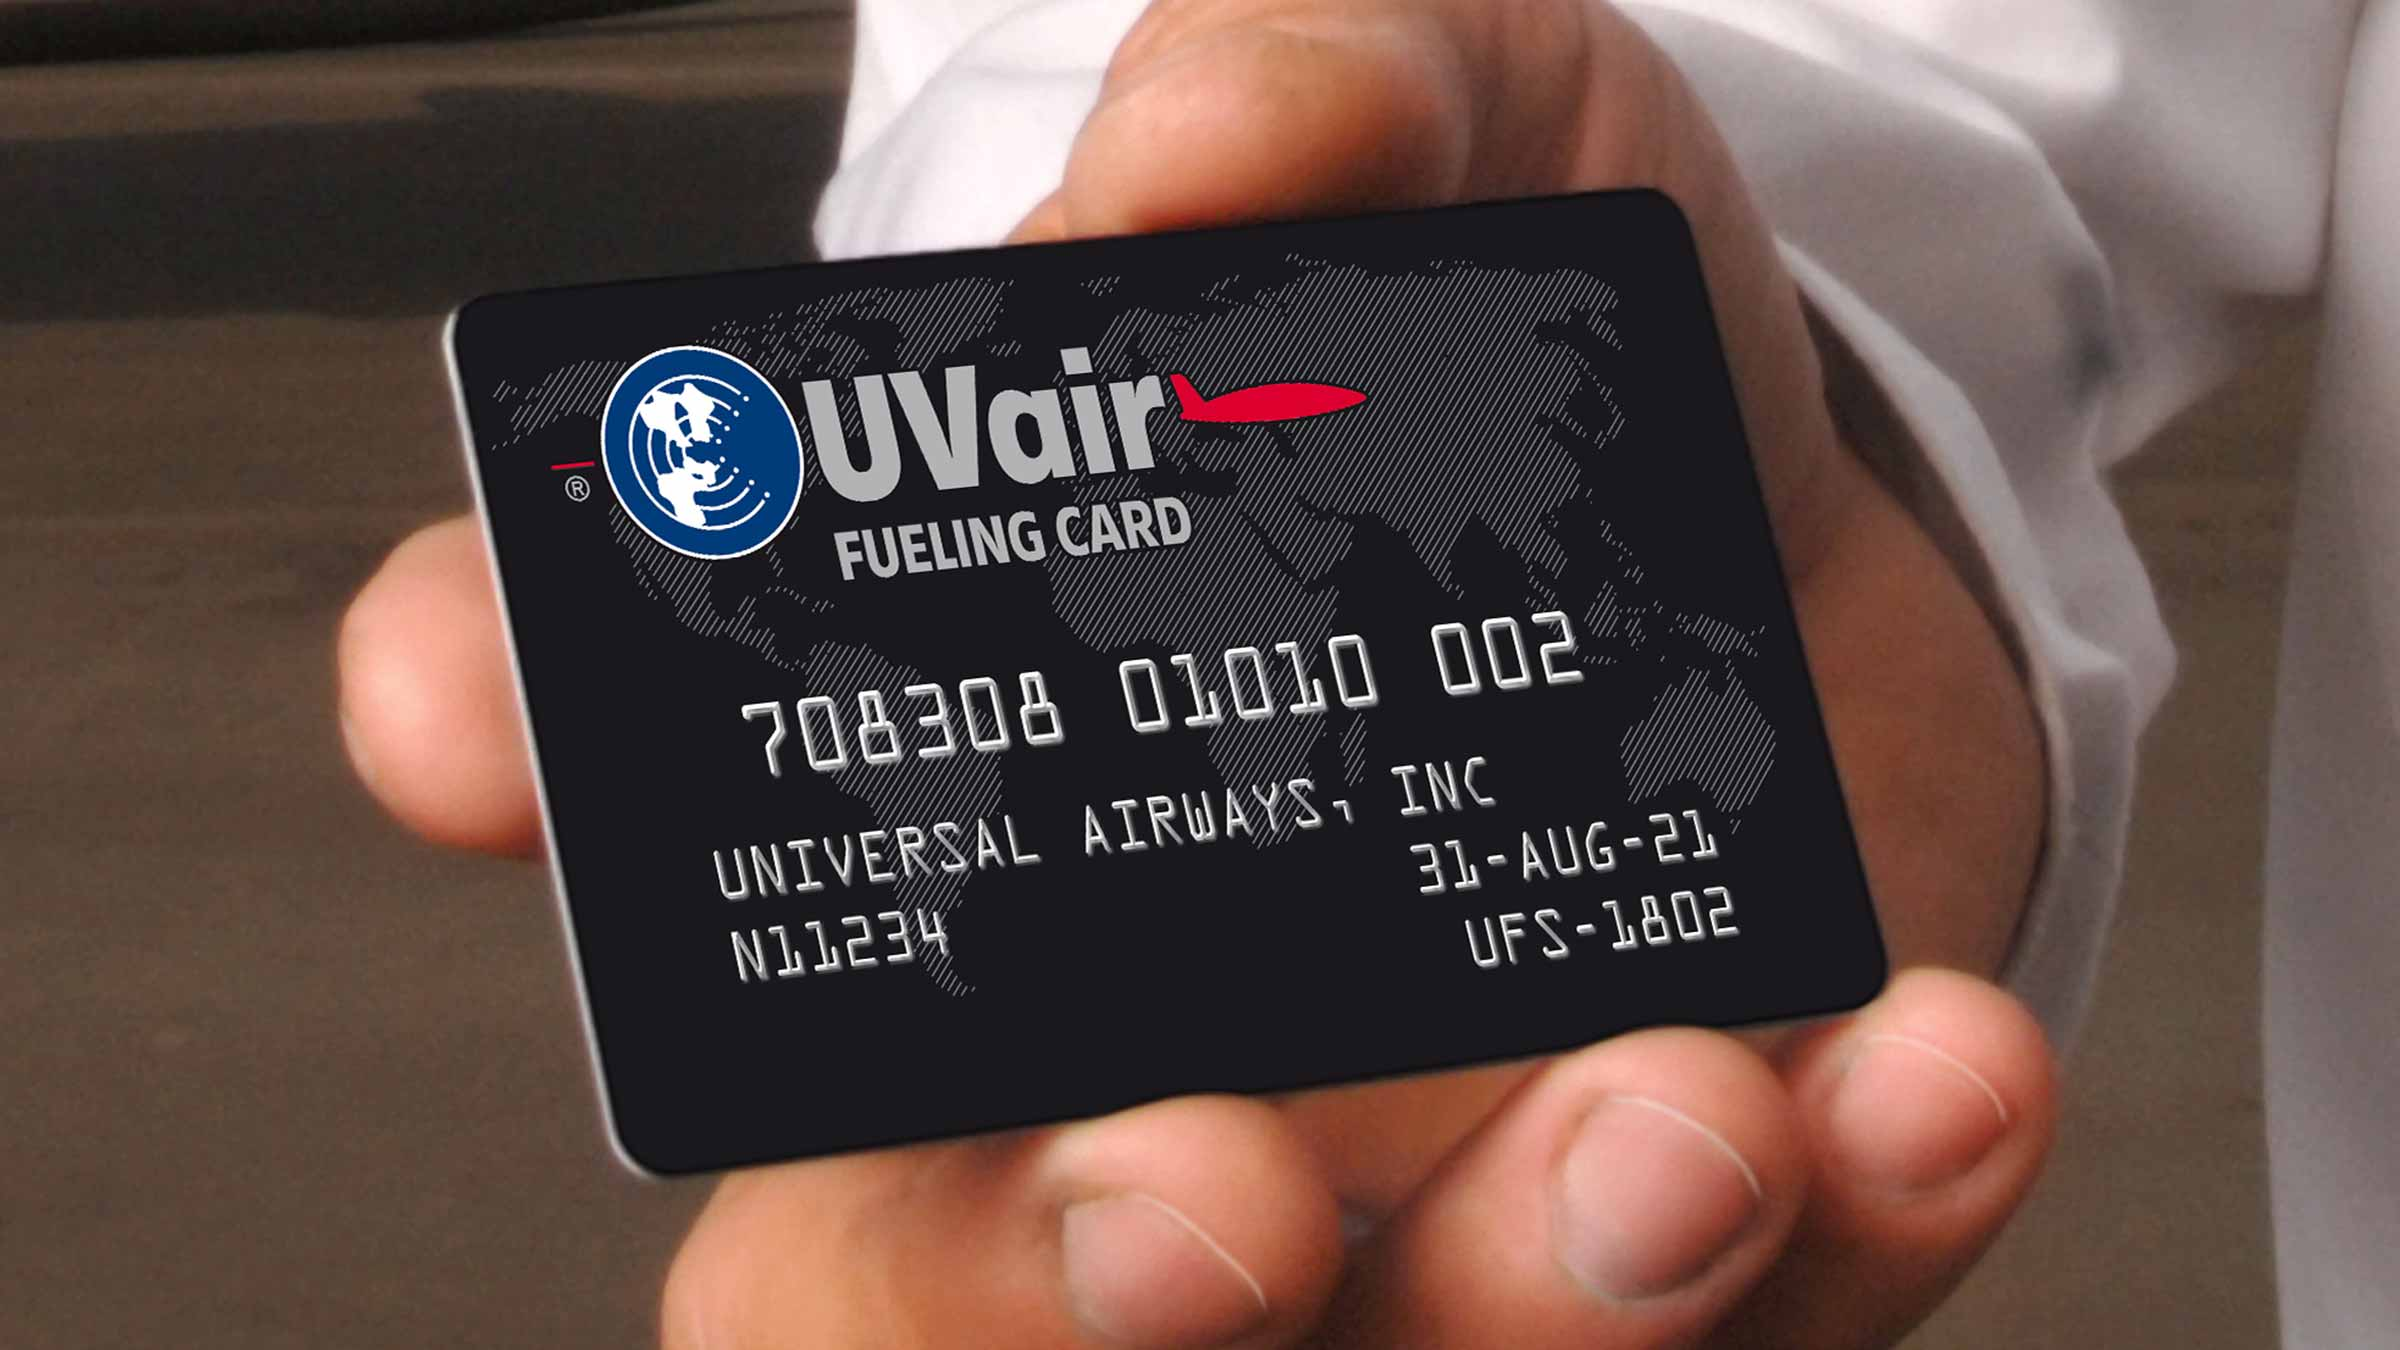 Universal electronic card. How to refuse a universal electronic card